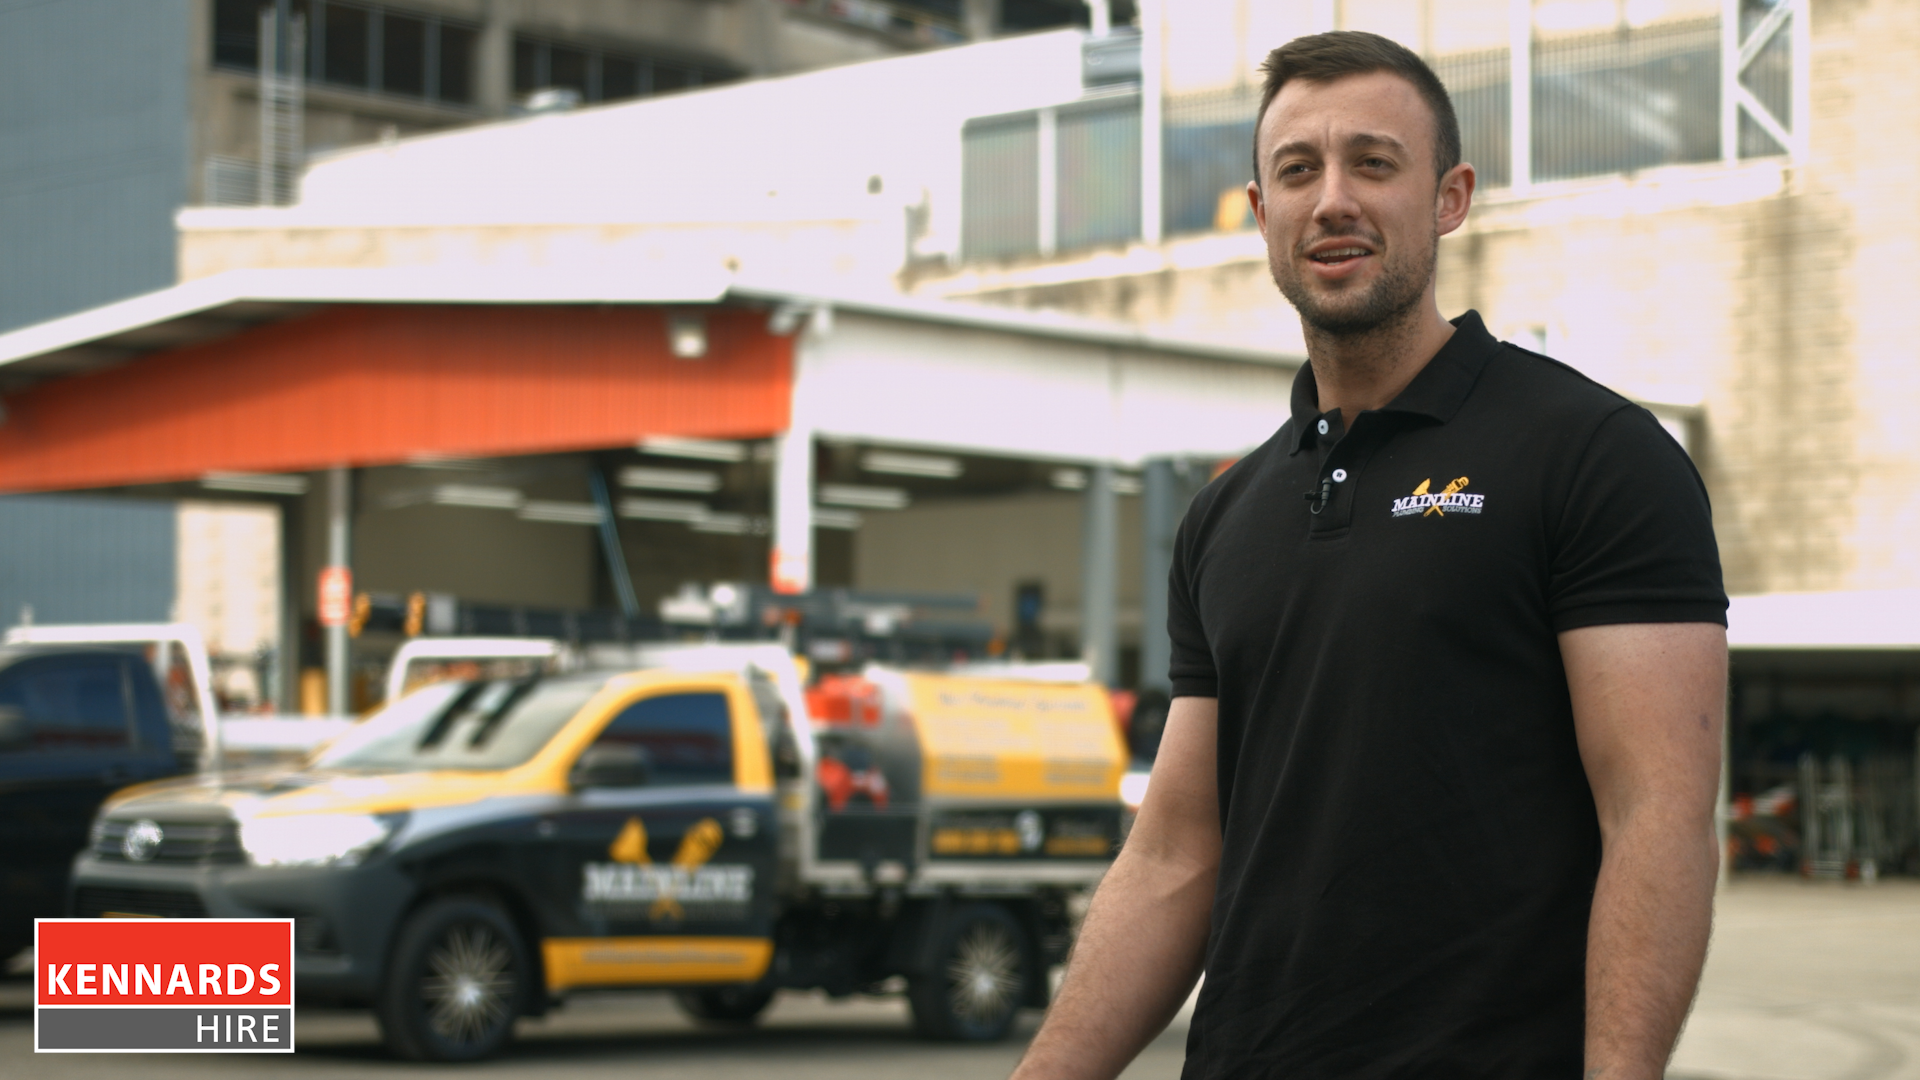 Why I use Kennards Hire: Nick from Mainline Plumbing Solutions